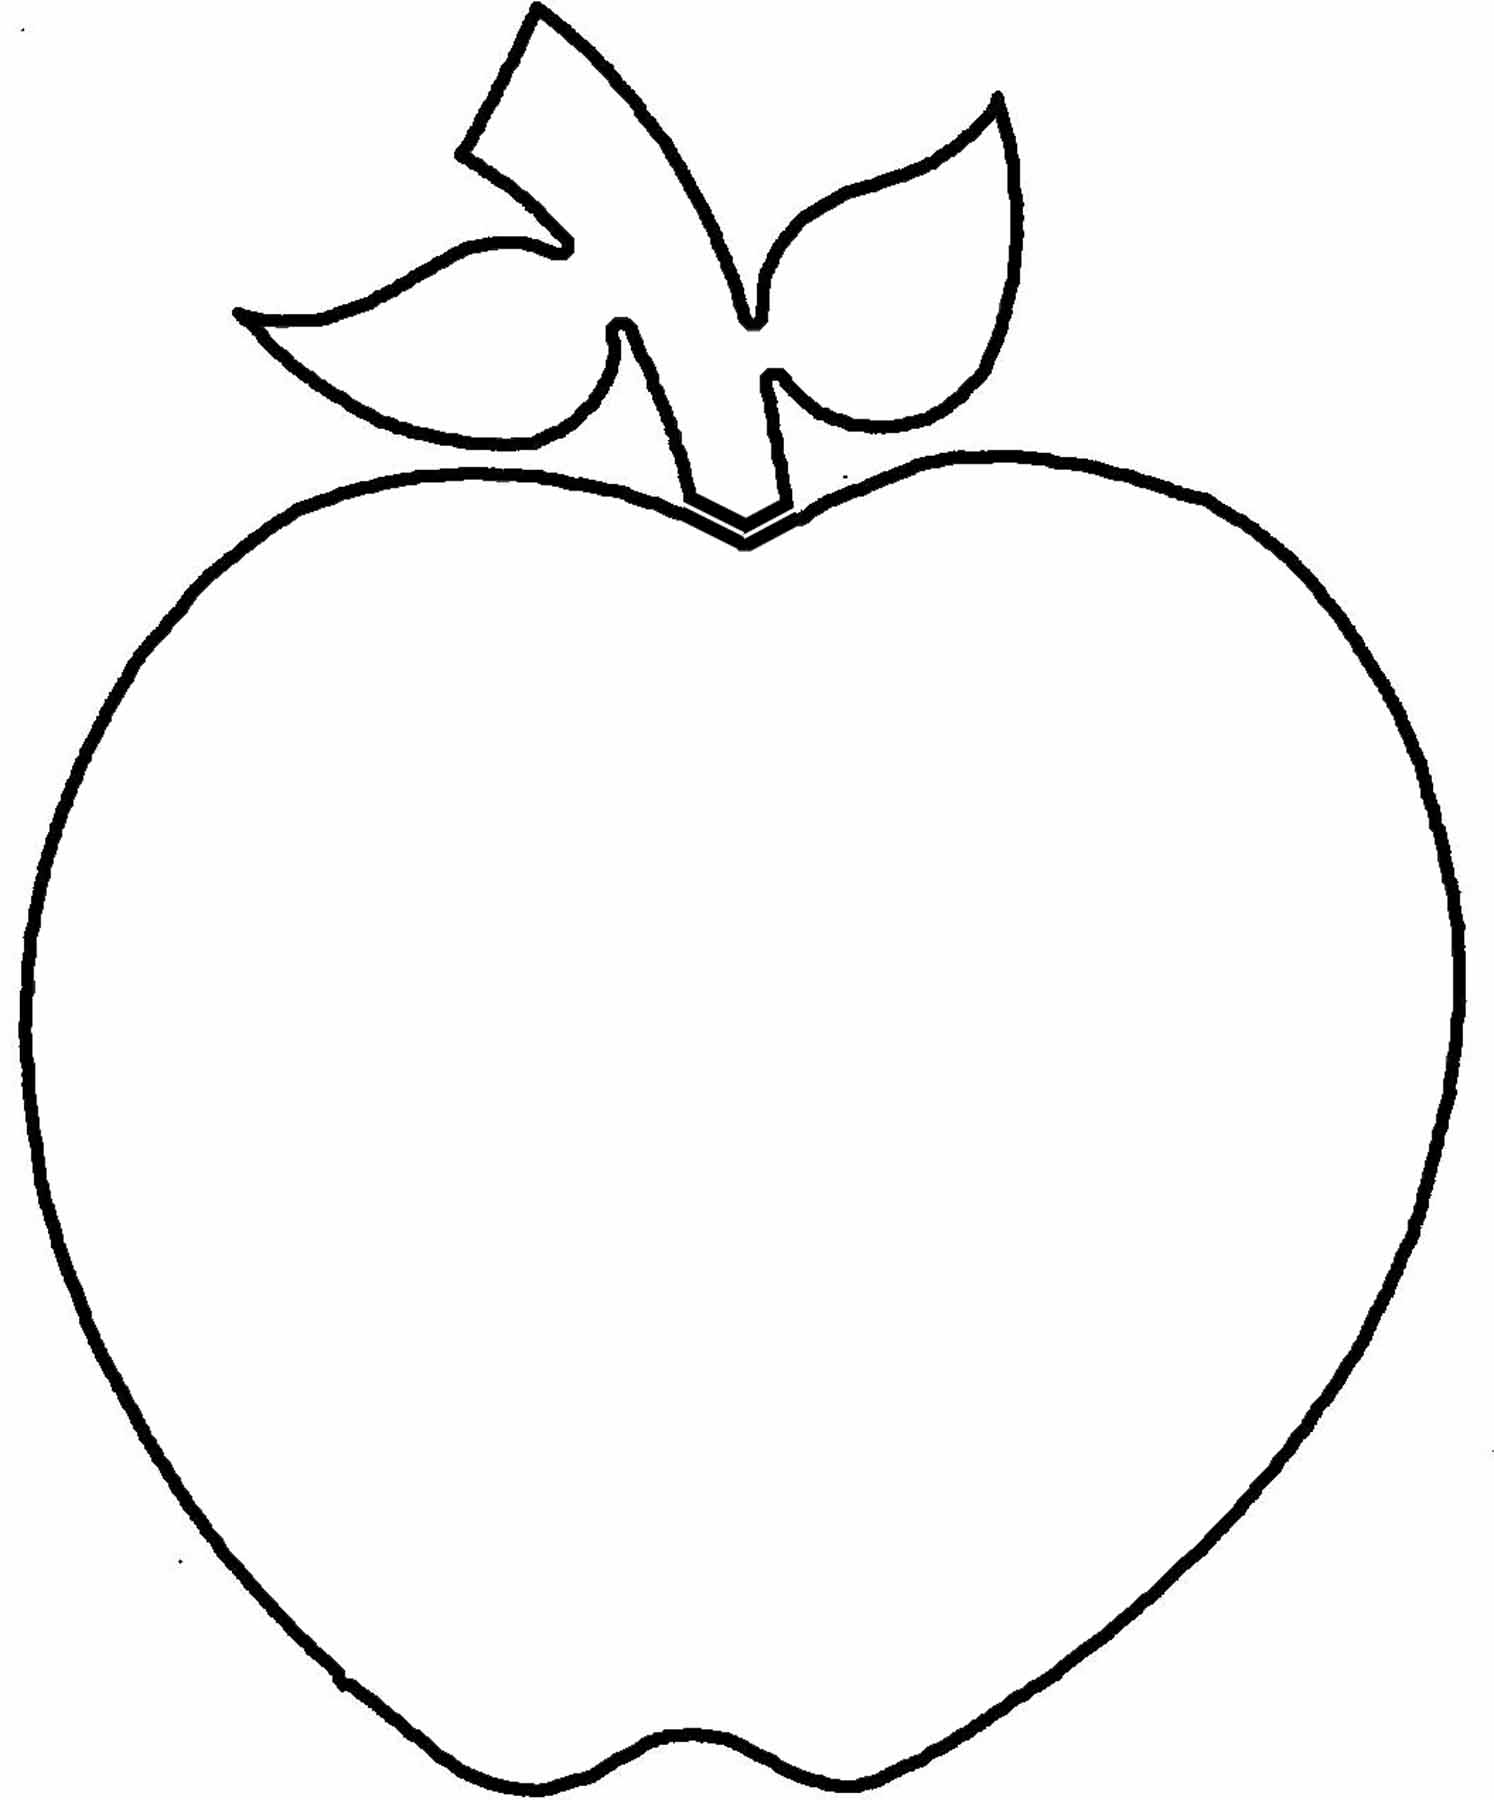 Images For Apple Vector Outline